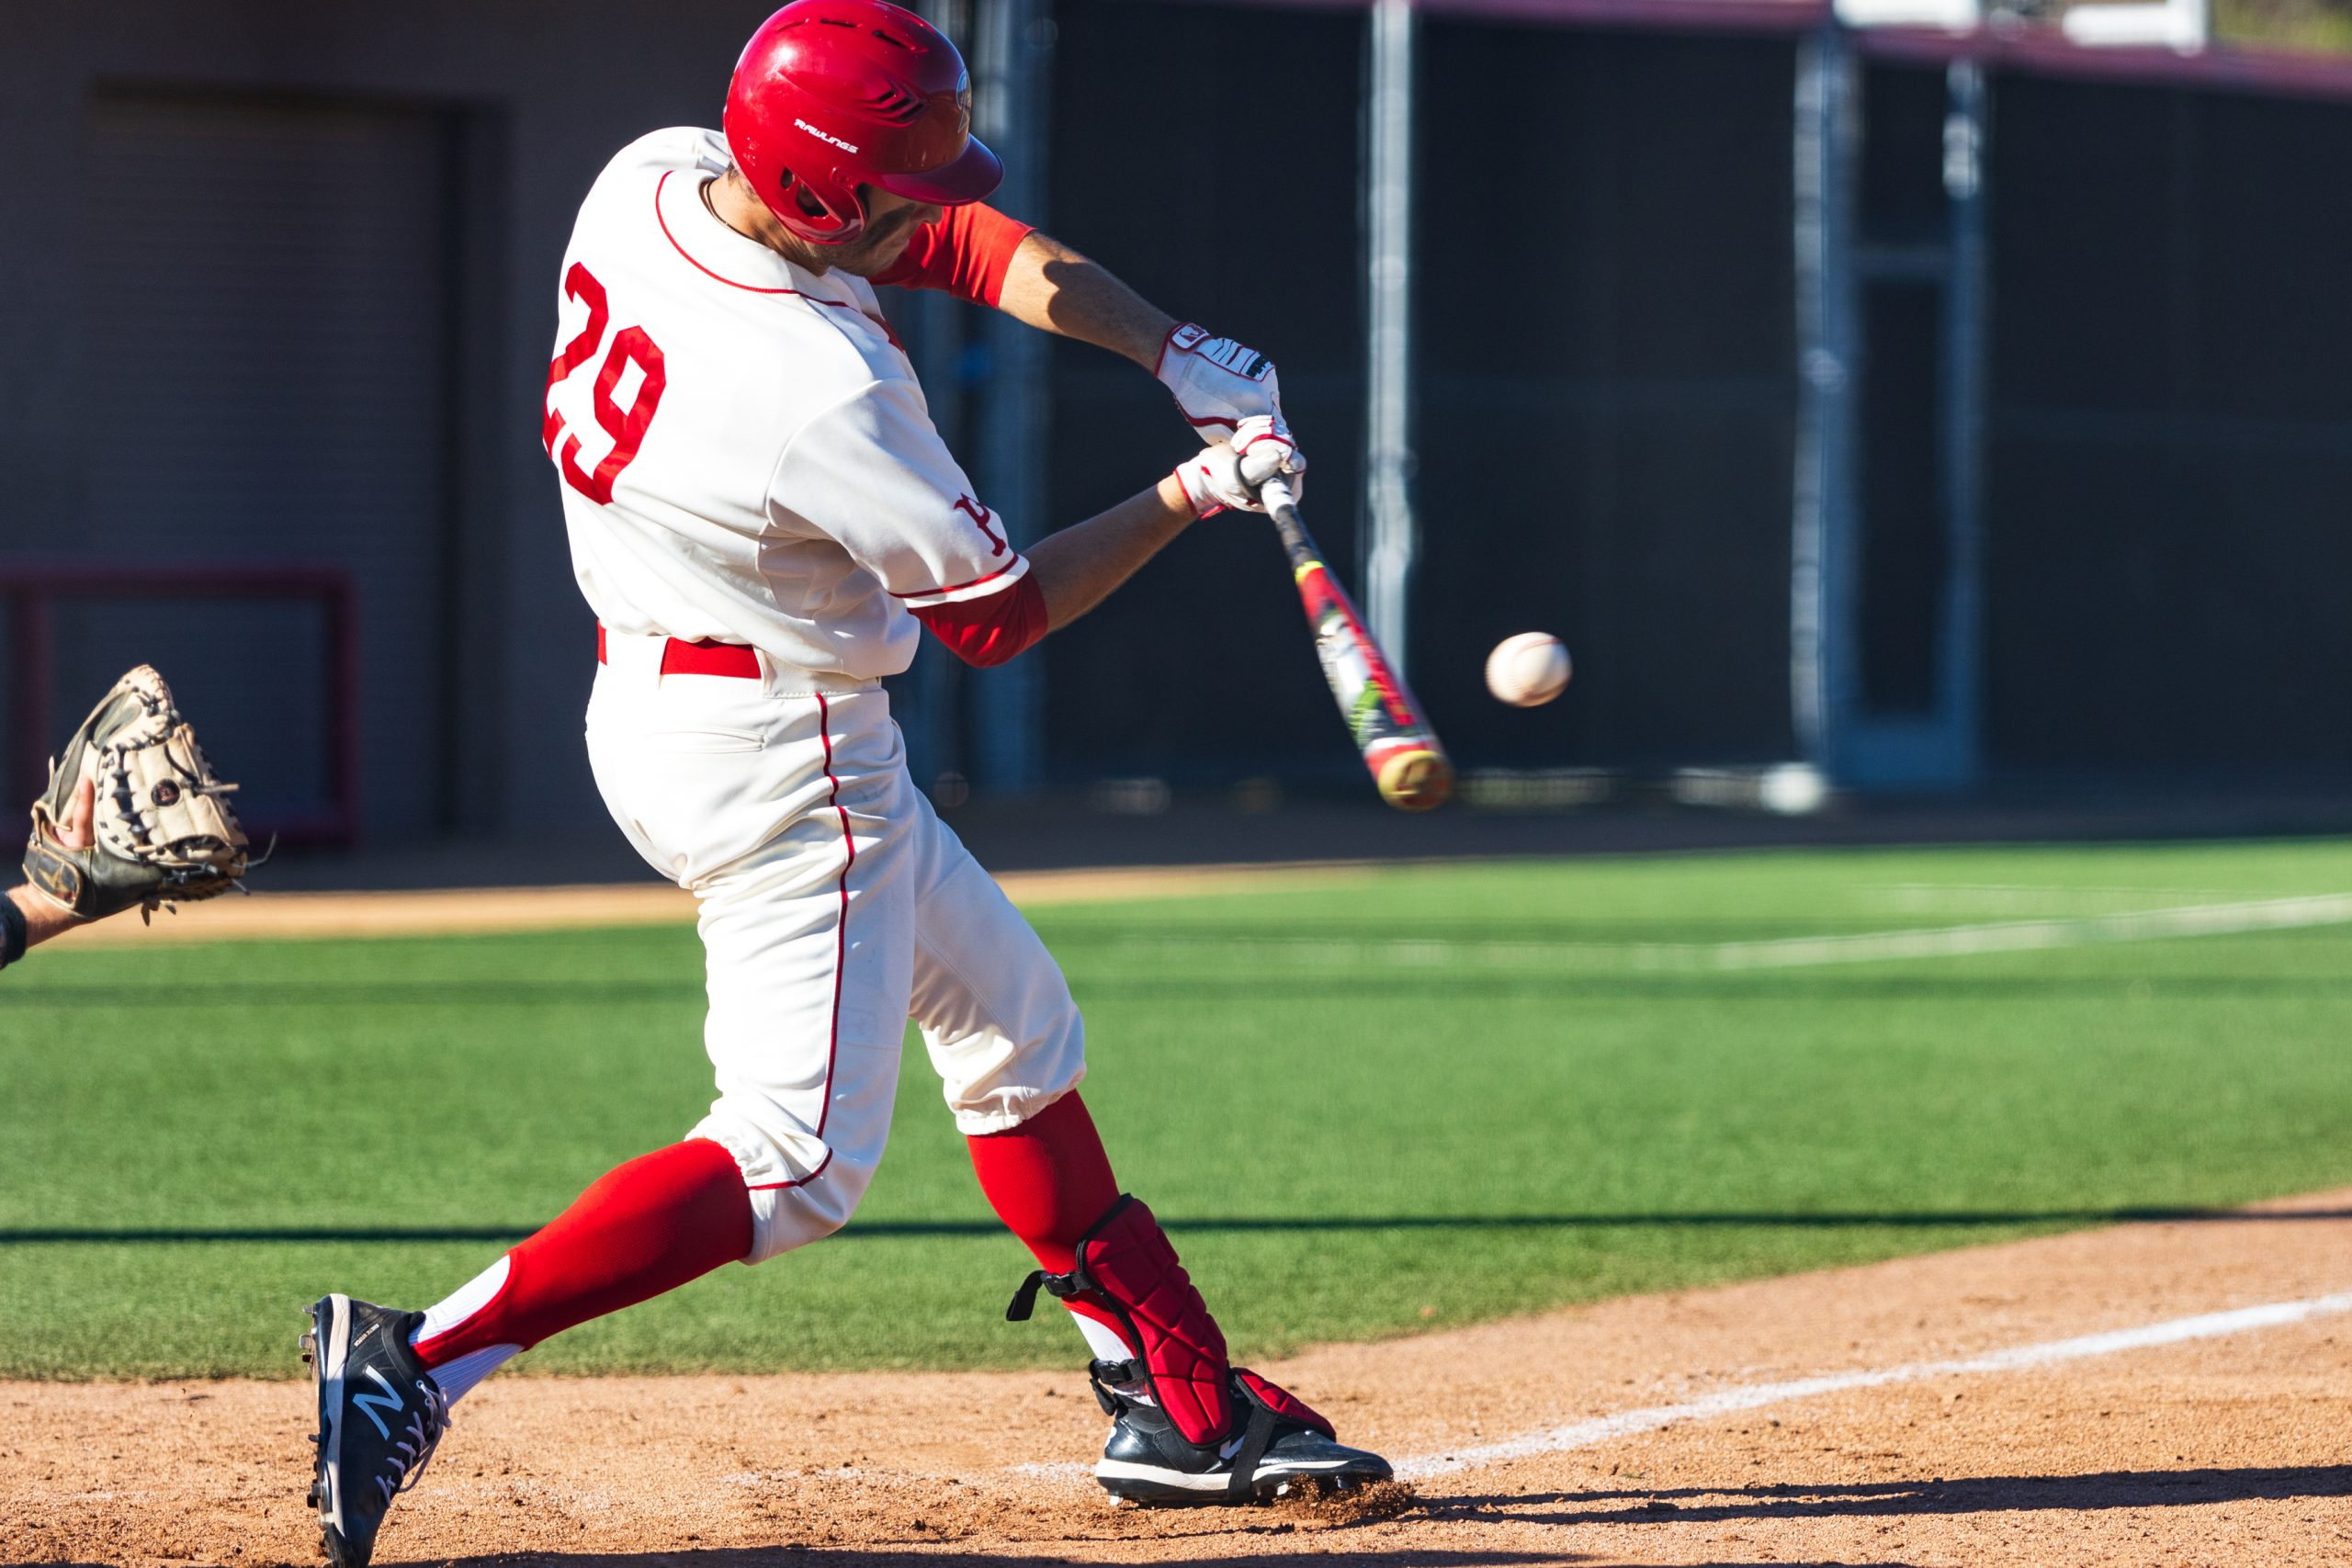 Comet outfielder Brady LaVoie swinging and hitting the ball during Palomar's 15-11 win against Fullerton College, Feb. 1, 2020. Photo by Kevin Mijares/The Telescope